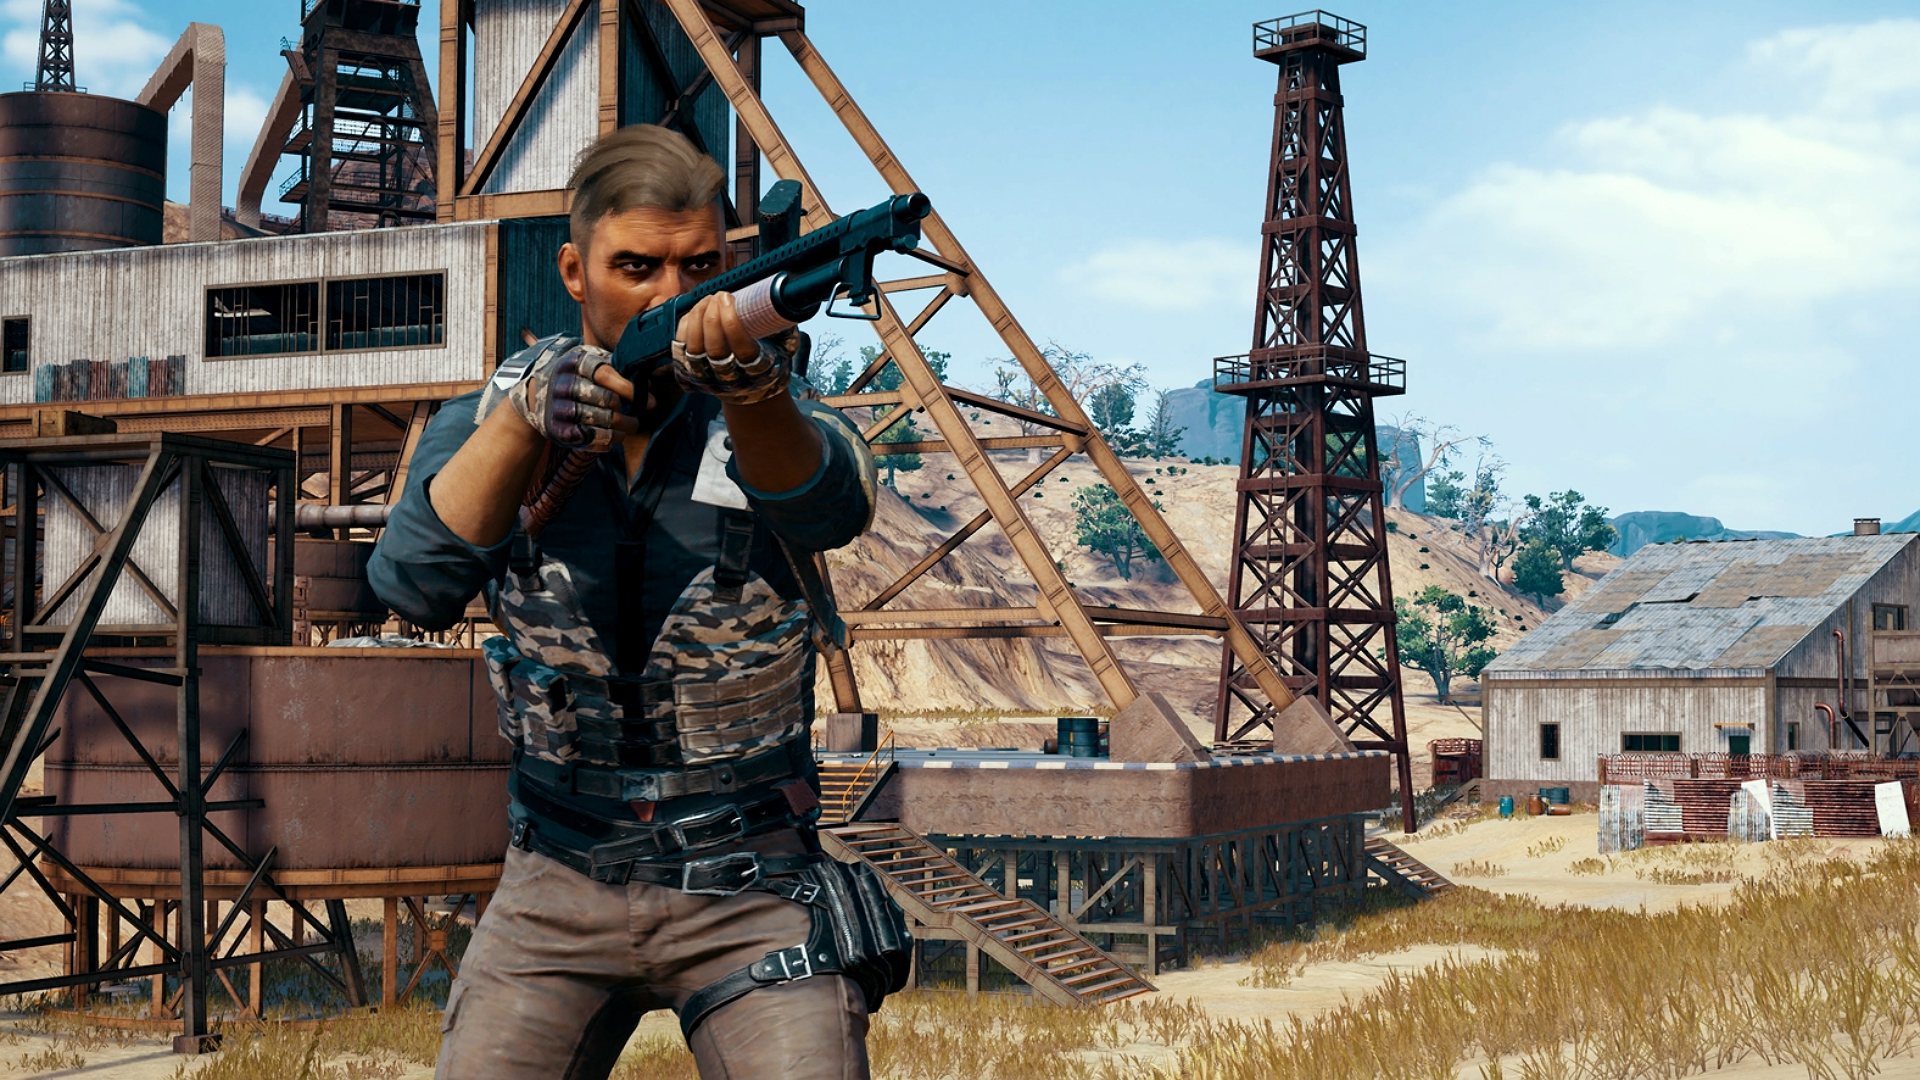 Pubg Weapons Guide The Best Guns For Getting A Chicken